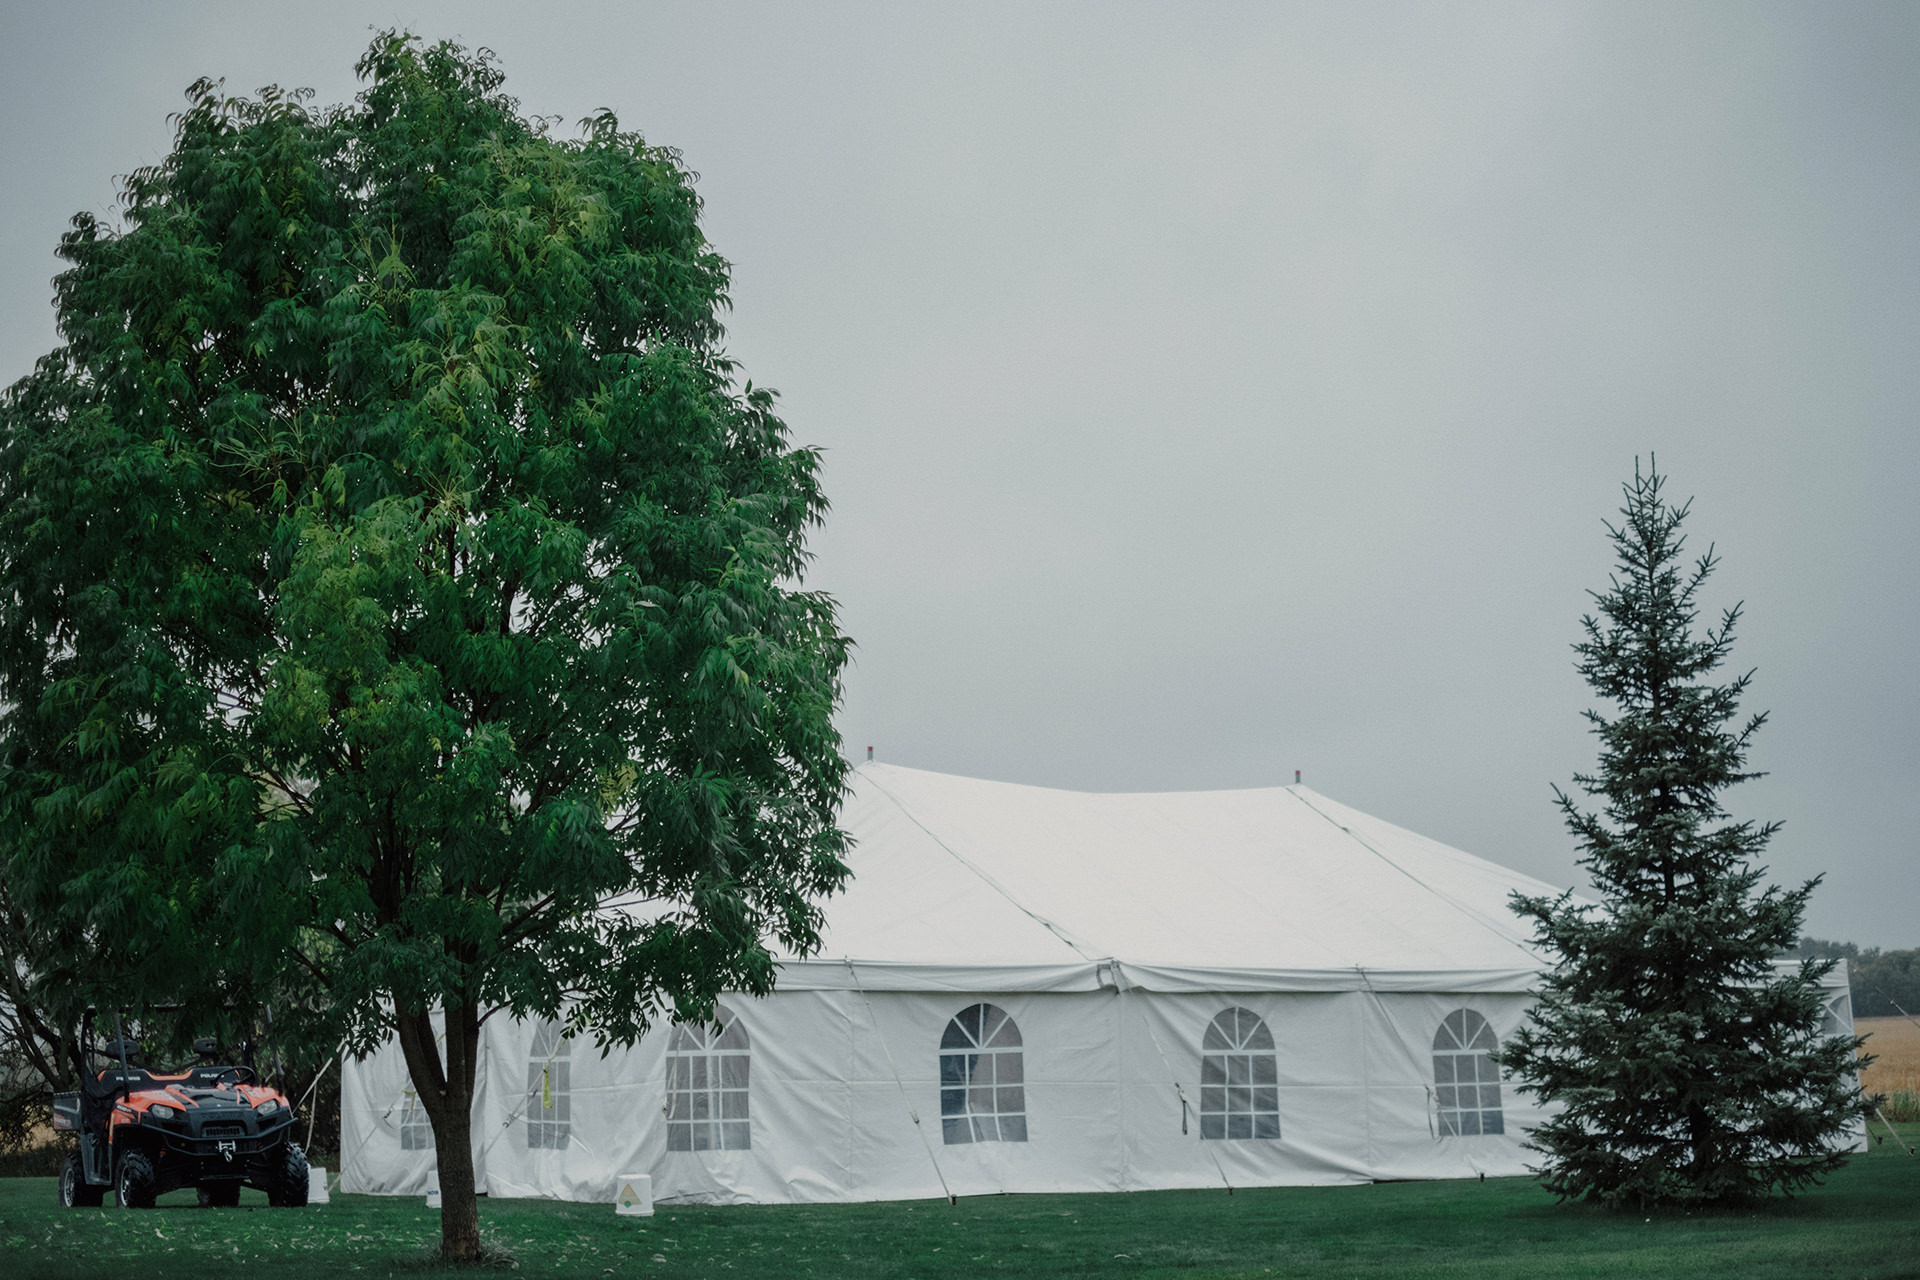 0004-balmoral-manitoba-tent-wedding-stephanie-ryan.jpg